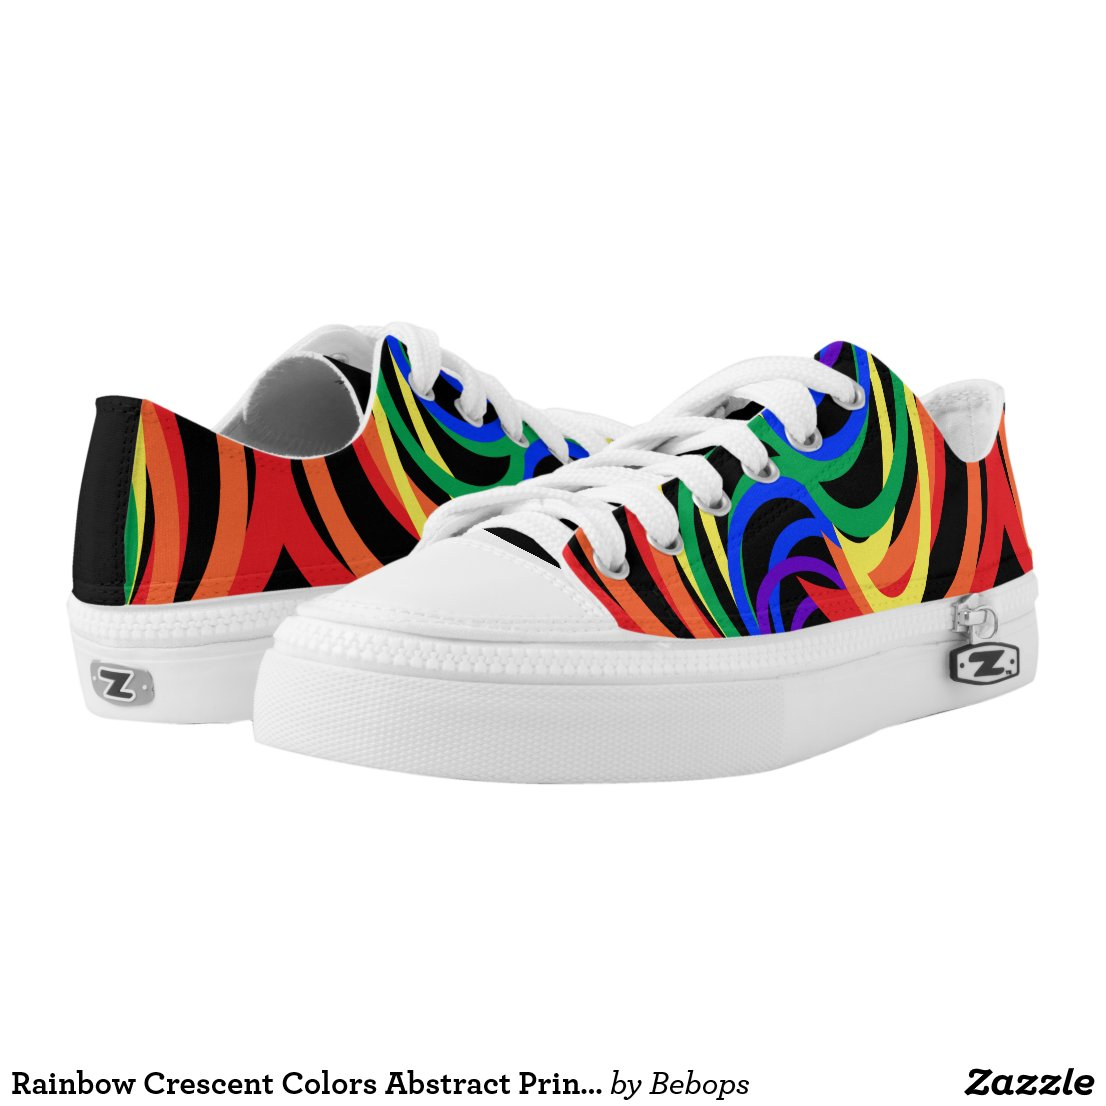 Rainbow Crescent Colors Abstract Printed Shoes